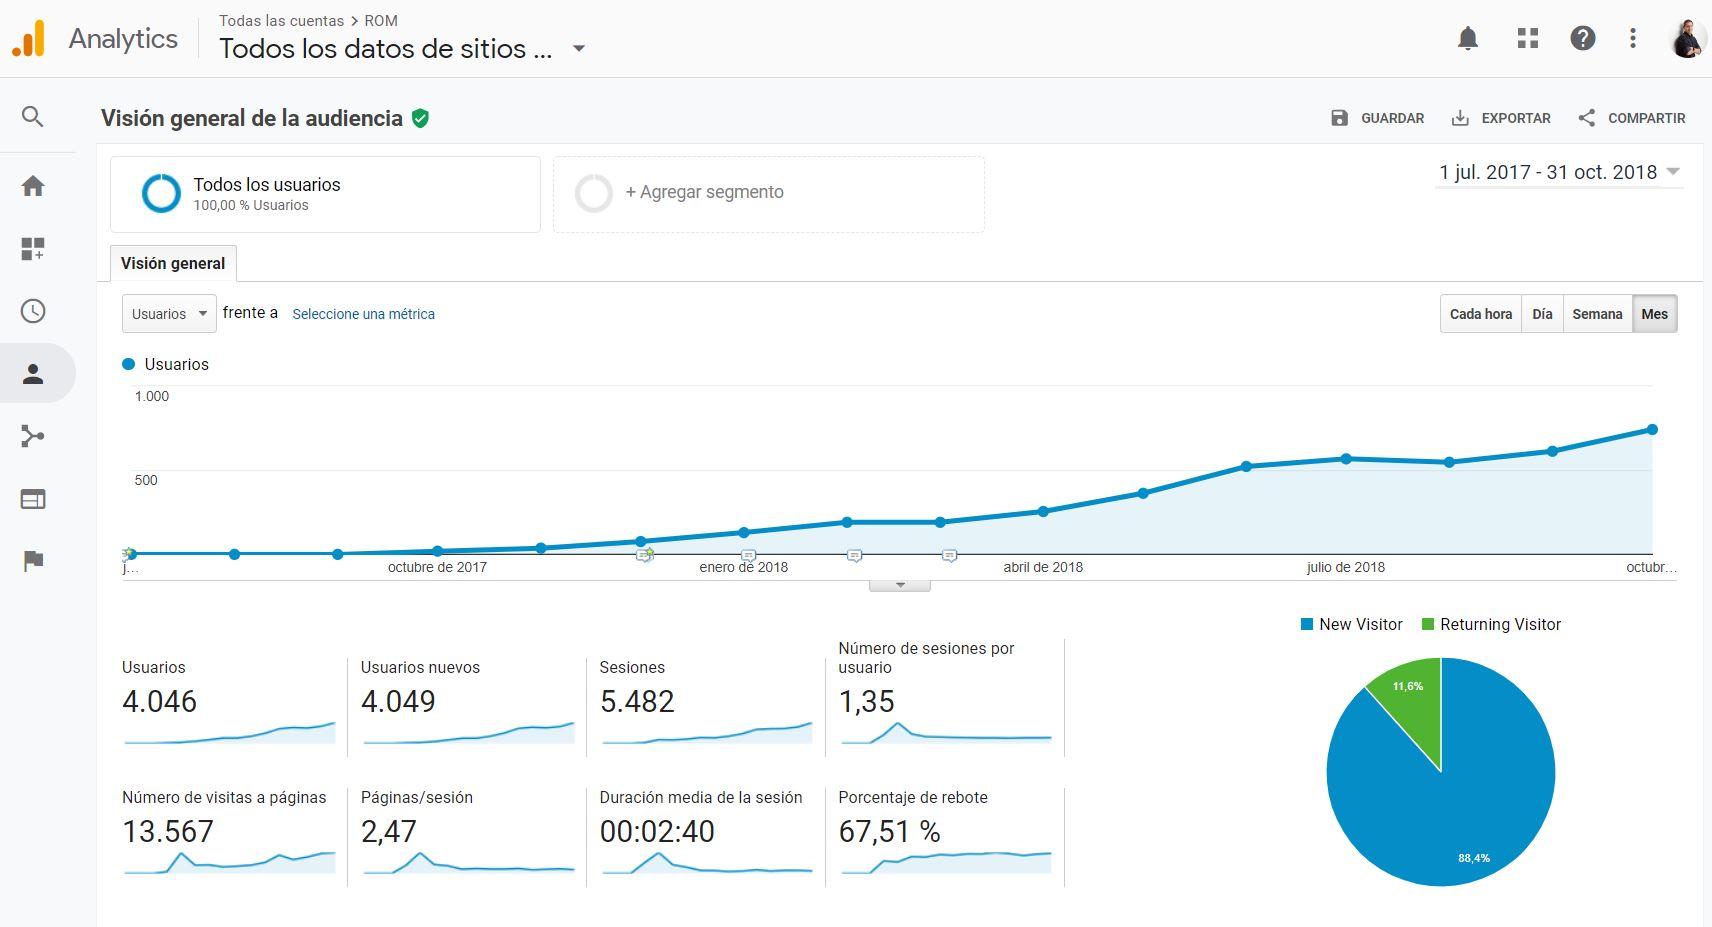 Visitas al website ROM - Google Analytics